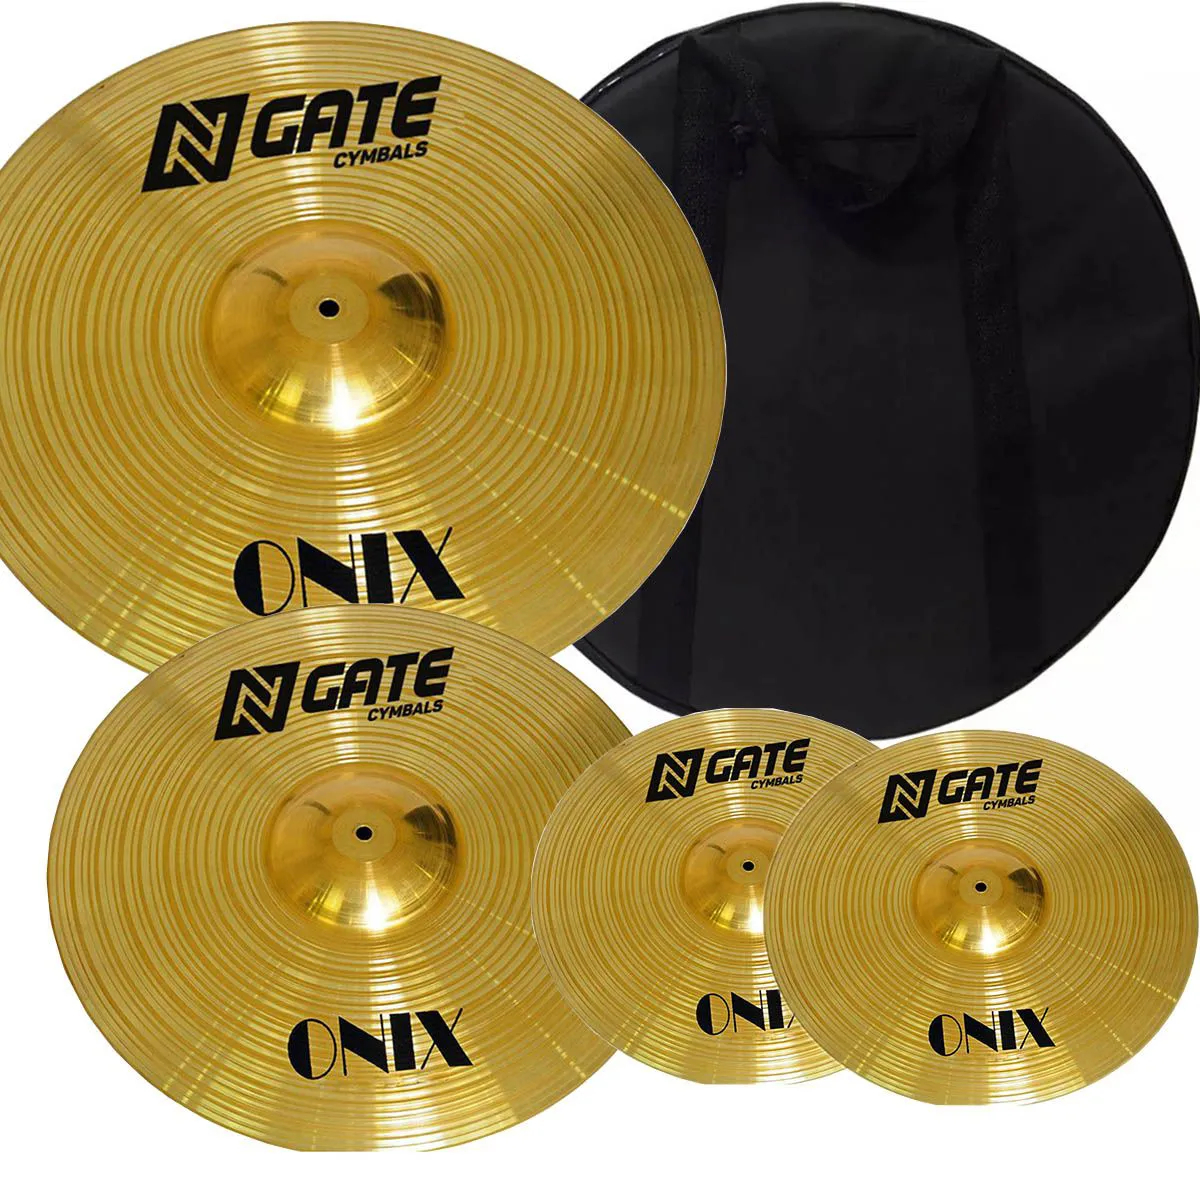 Kit de Pratos N.gate Séries Onix 13HH+14MC+18 Crash com Bag